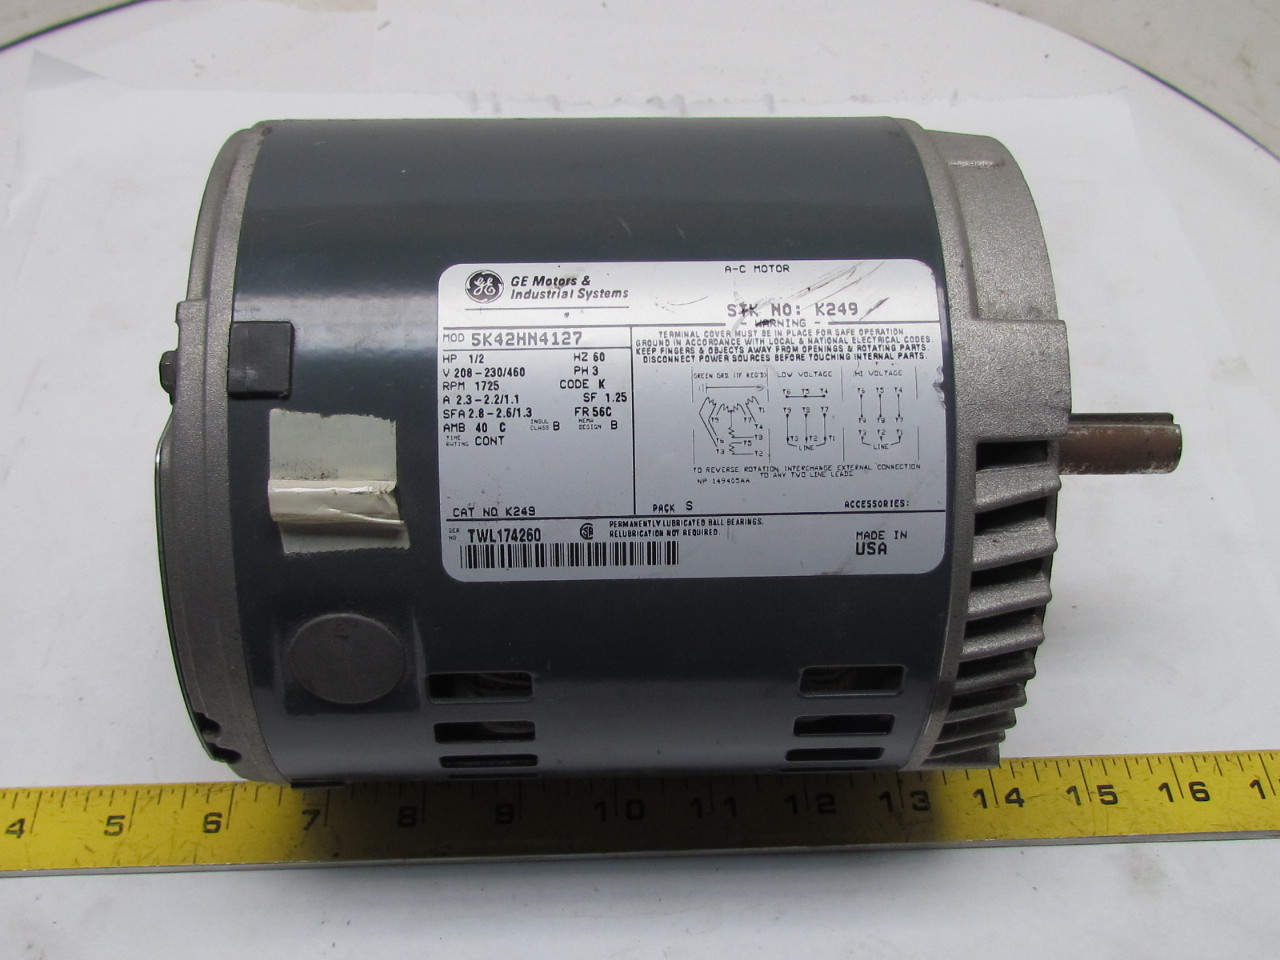 General electric 5k42hn4127 3ph ac motor 1 2hp 1725 rpm Electric ac motors